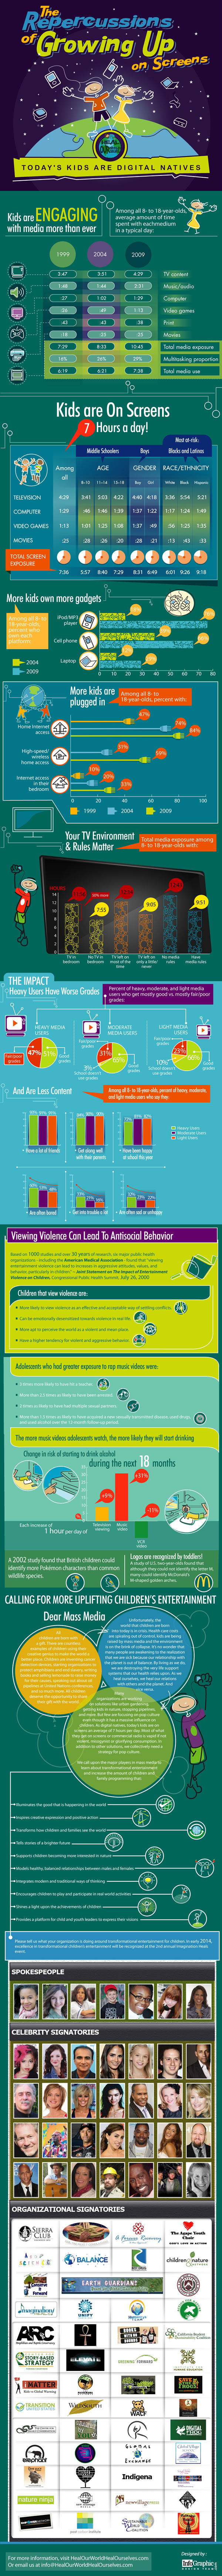 repercussions-of-growing-up-on-screens-infographic_518b856f6b1dc